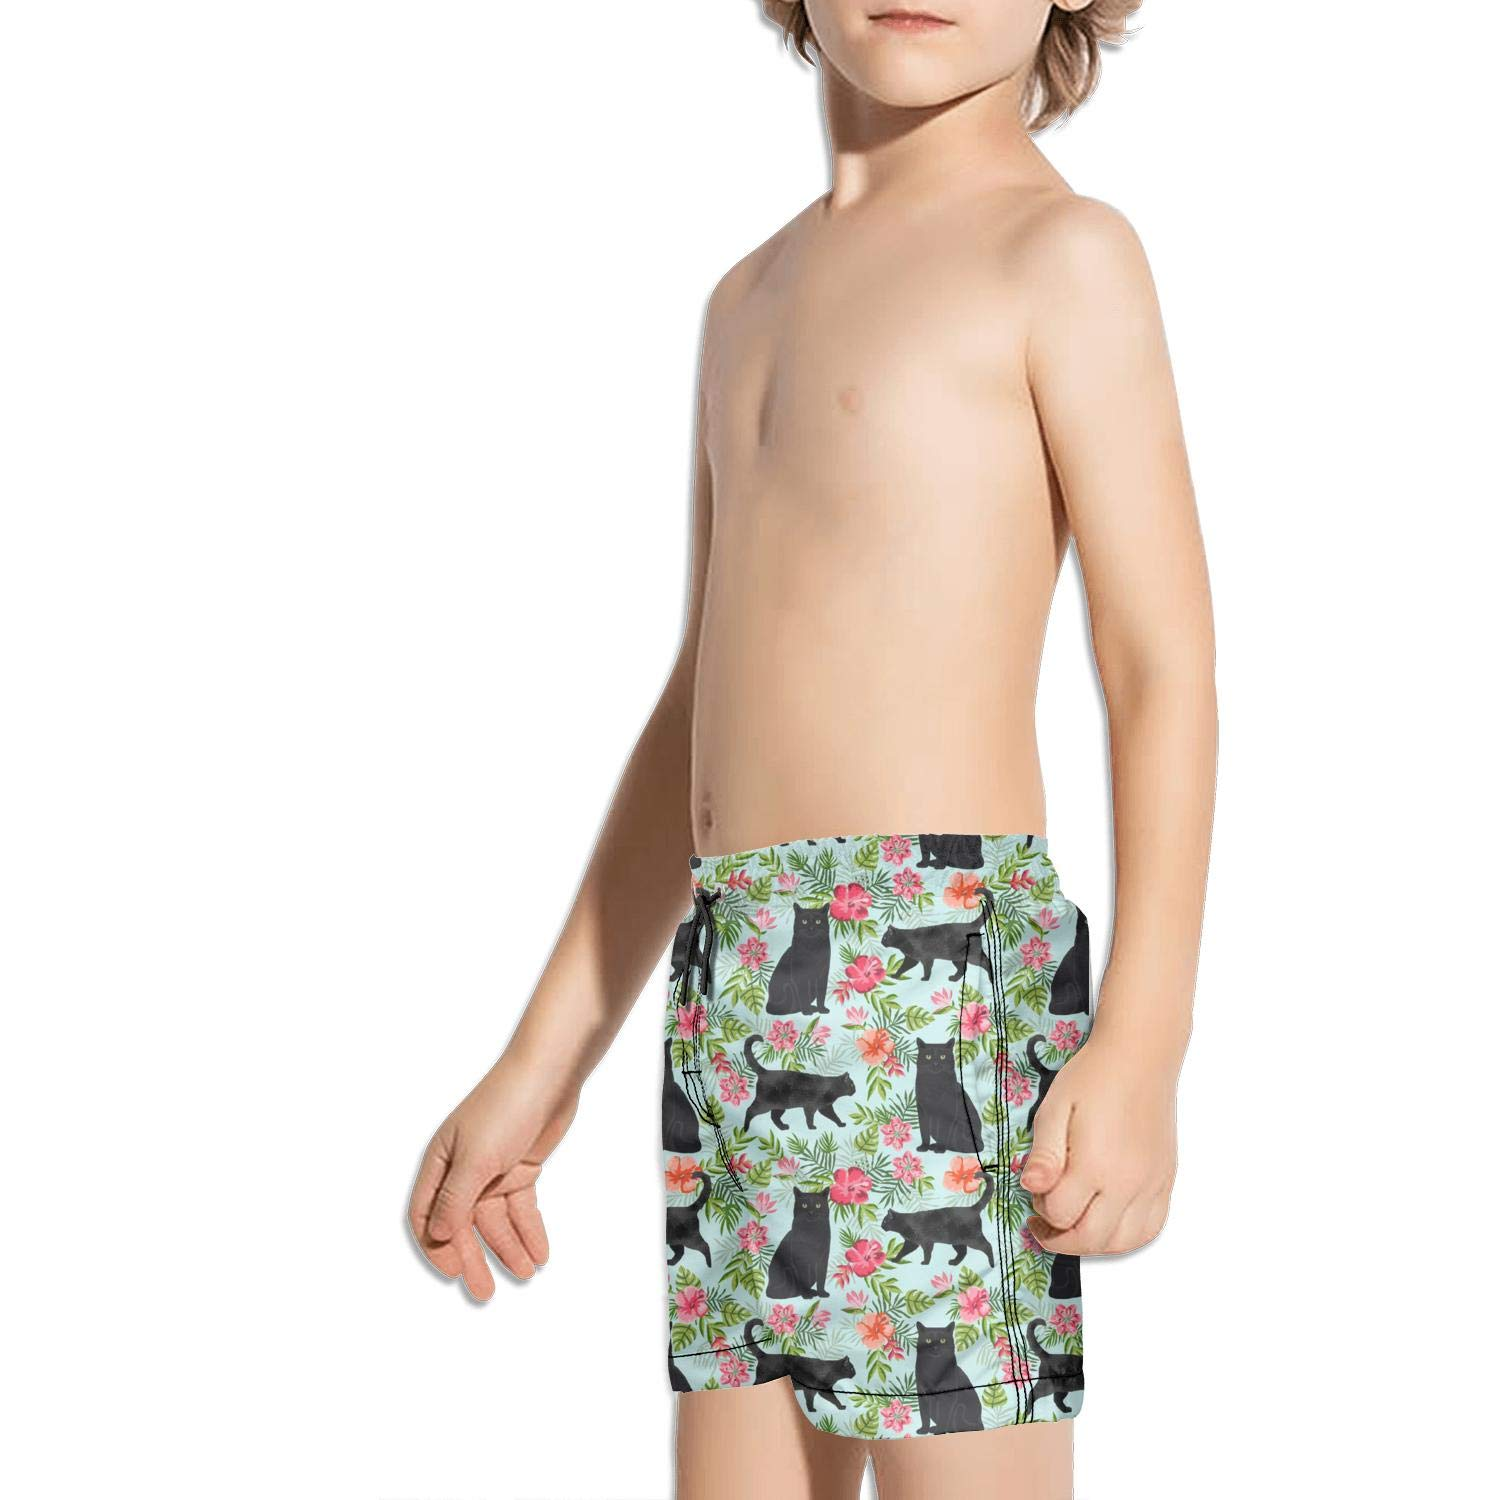 Beige cat Animal Boys Girls Swimming Trunks Beach Board Shorts Fully Lined Absorbent Colorful Workout Kids Short Pants